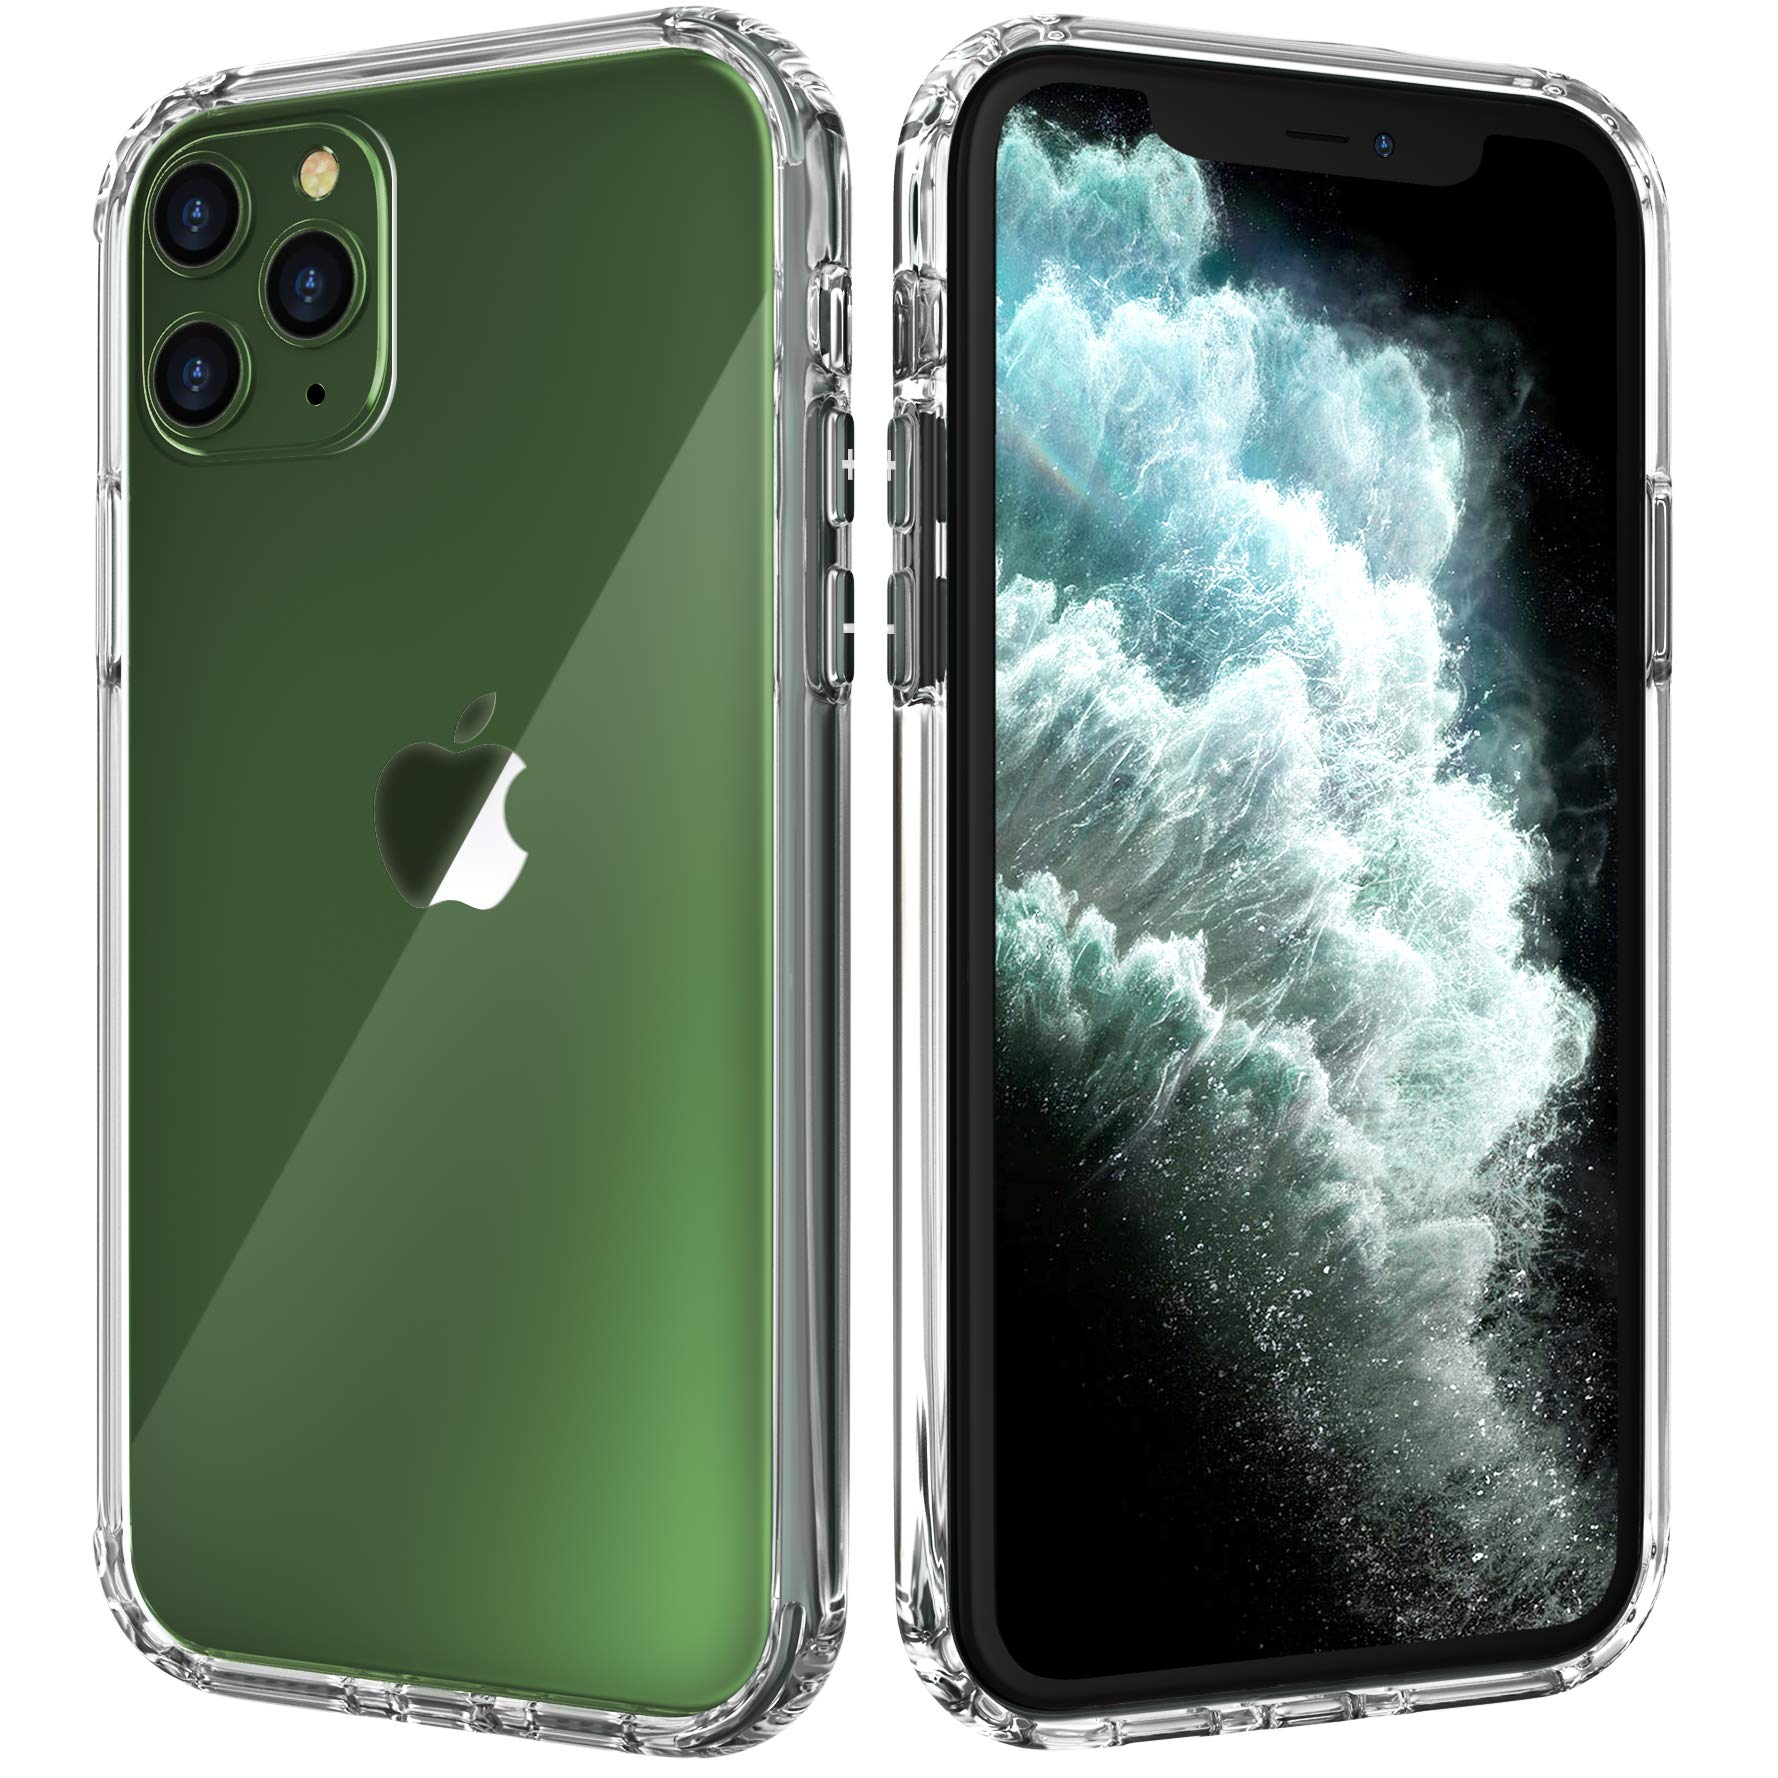 Citius Virtute iPhone 11 Pro Max Case | Clear Anti-Scratch Shock Absorption Protective Cover Compatible with iPhone 11 Pro Max Case